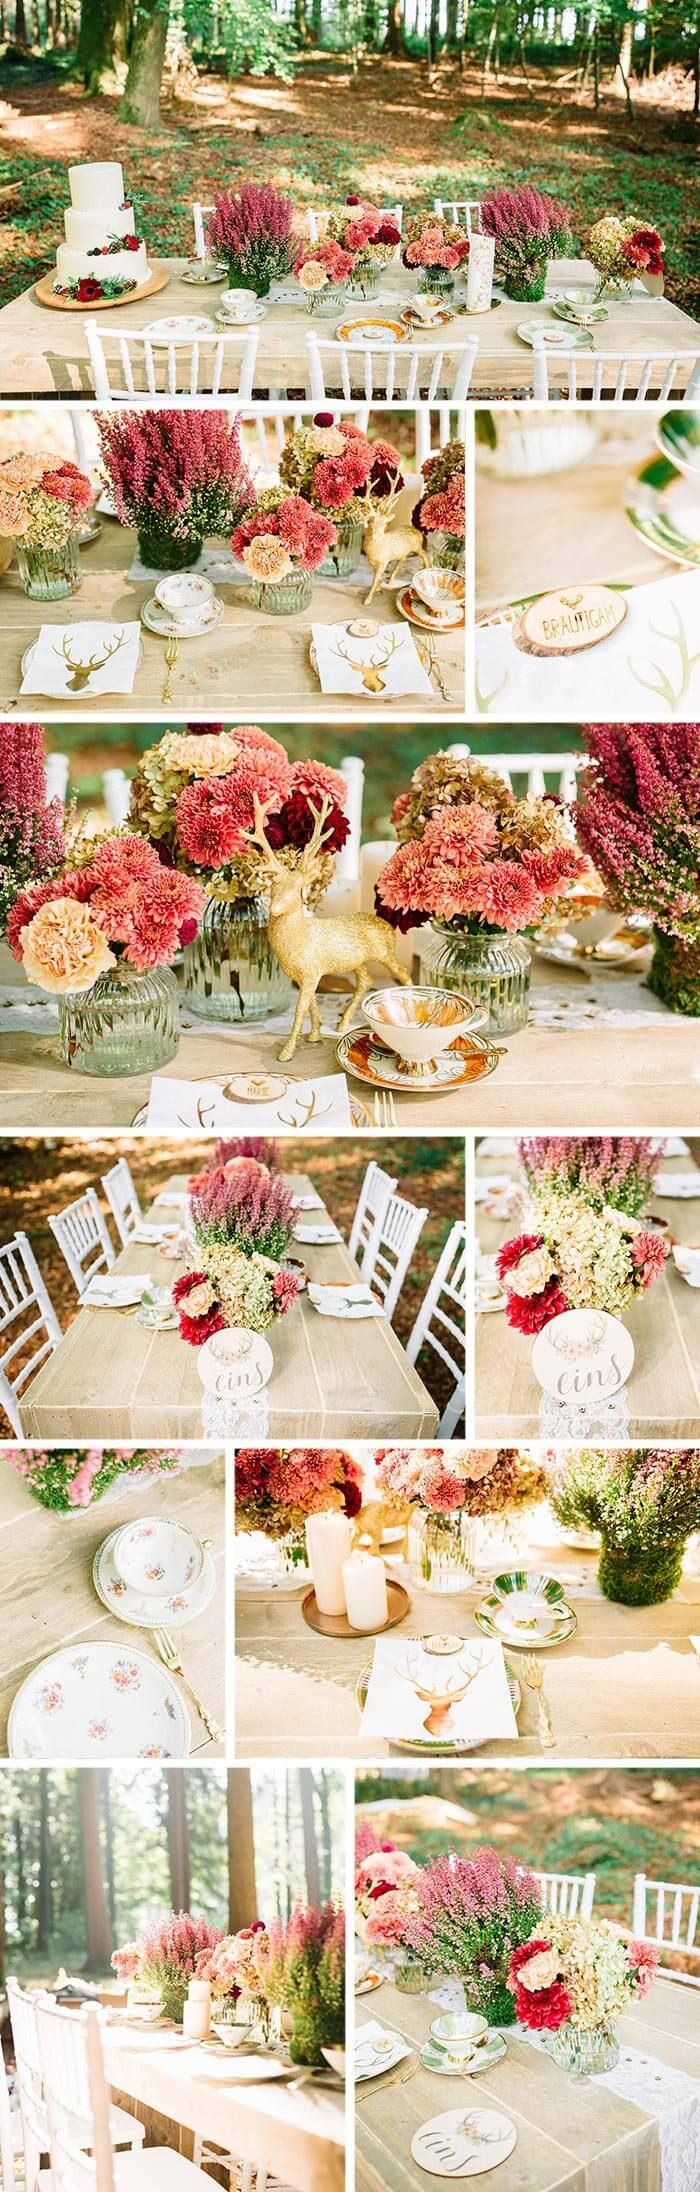 The table decoration for weddings in the countryside is based on nature and the …